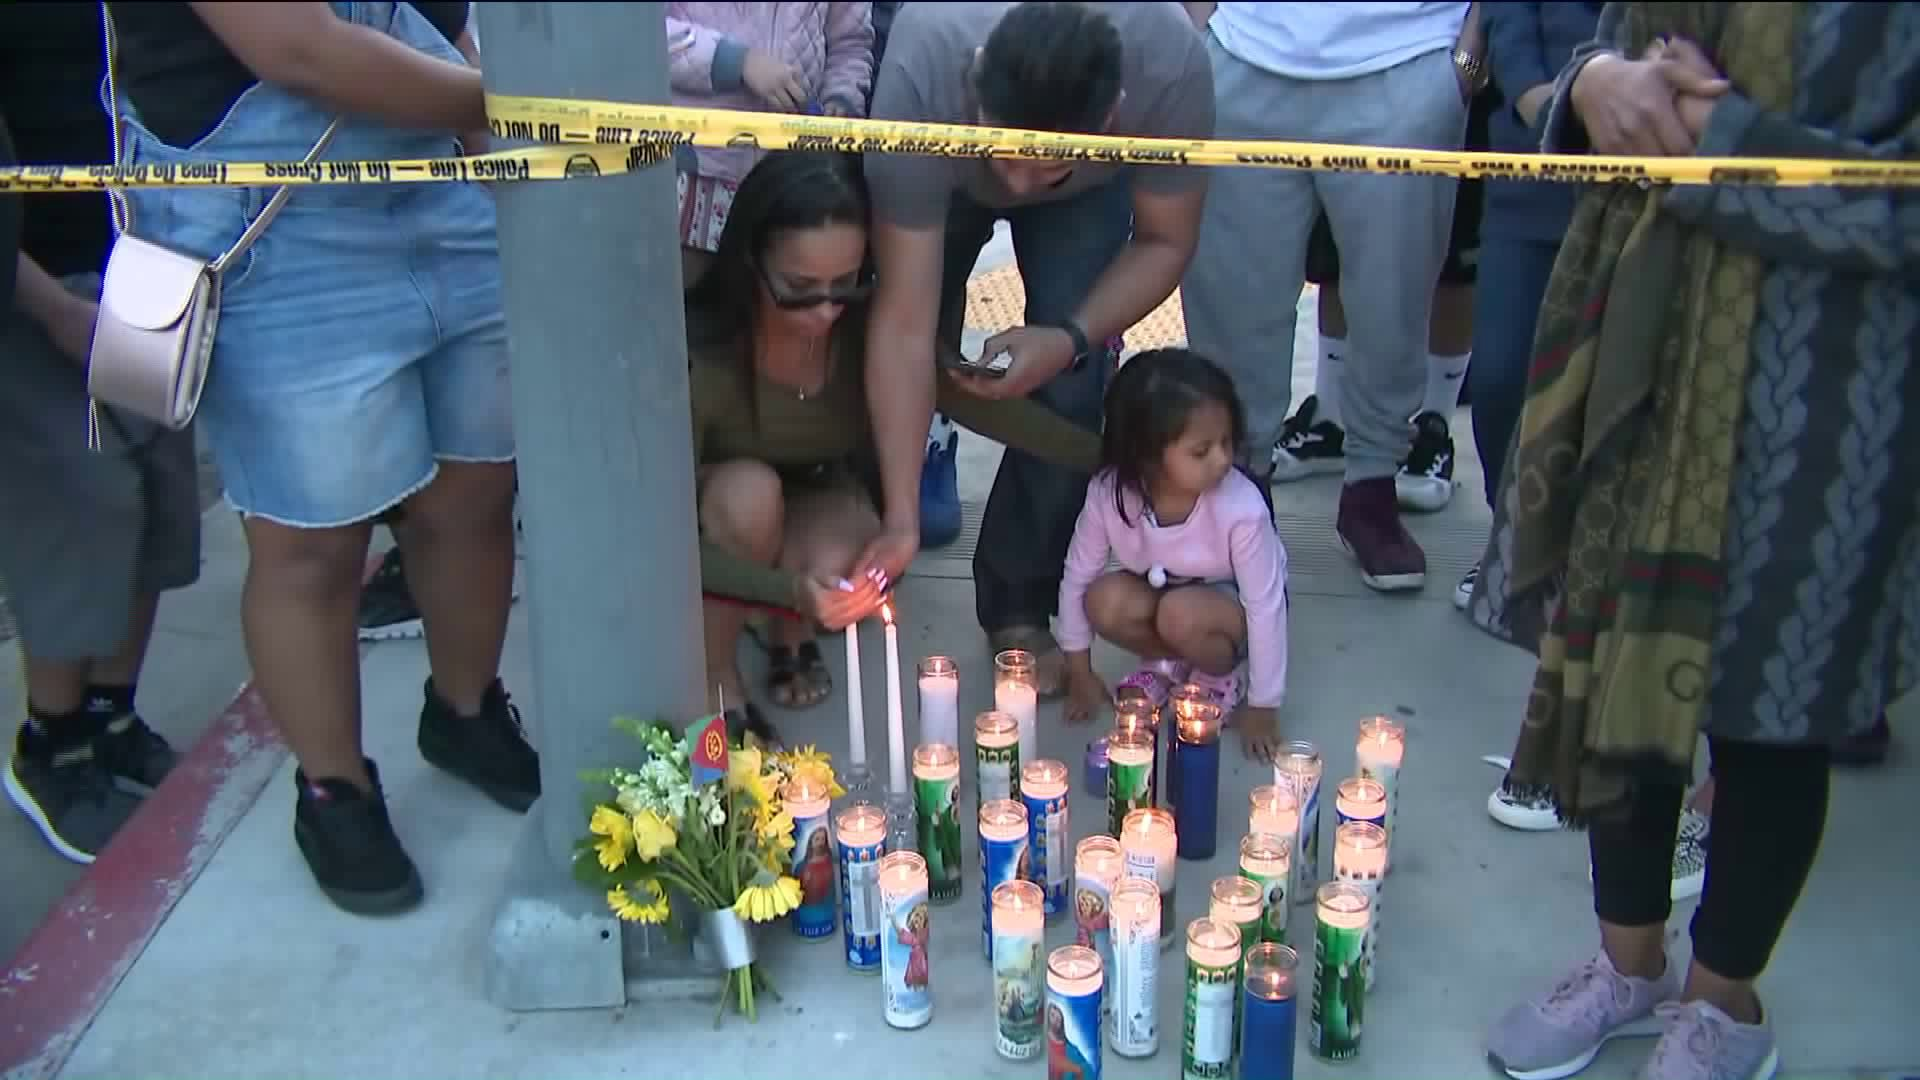 Hundreds of people gathered at the scene where rapper Nipsey Hussle was fatally shot in Hyde Park on March 31, 2019. (Credit: KTLA)